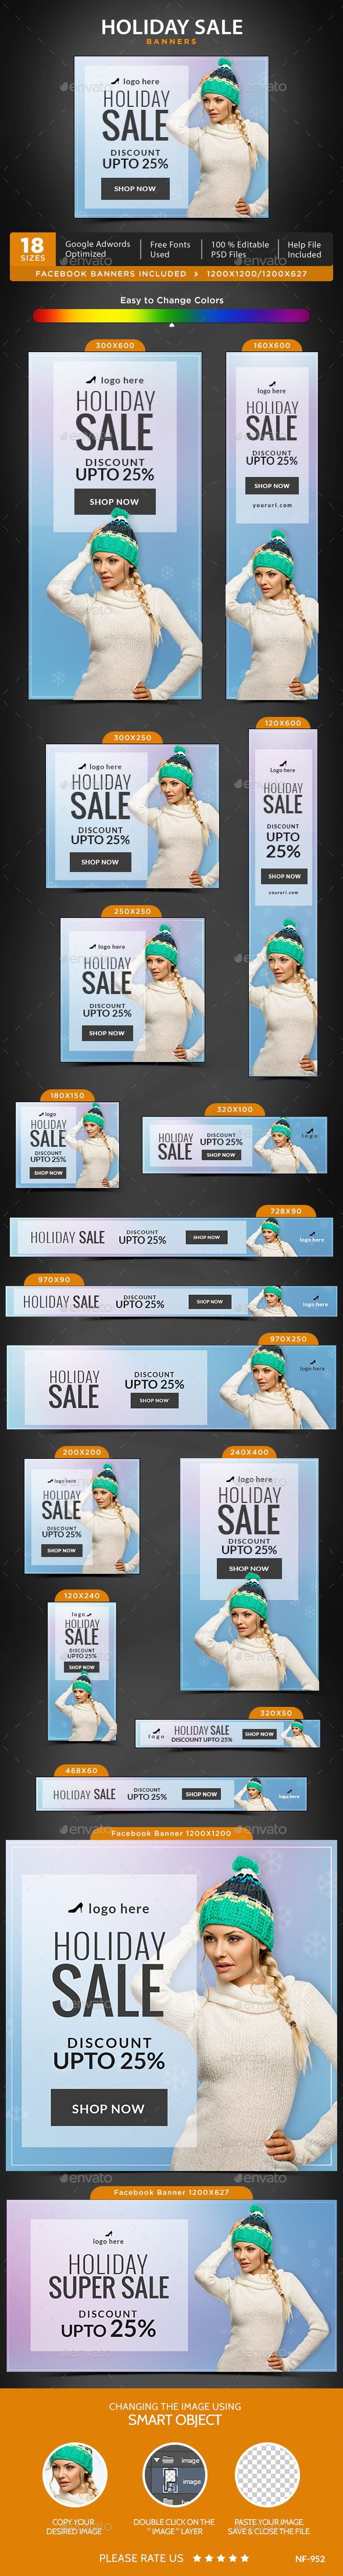 Holiday Sale Web Banners Template PSD #ad #design Download: http://graphicriver.net/item/holiday-sale-banners/14237979?ref=ksioks